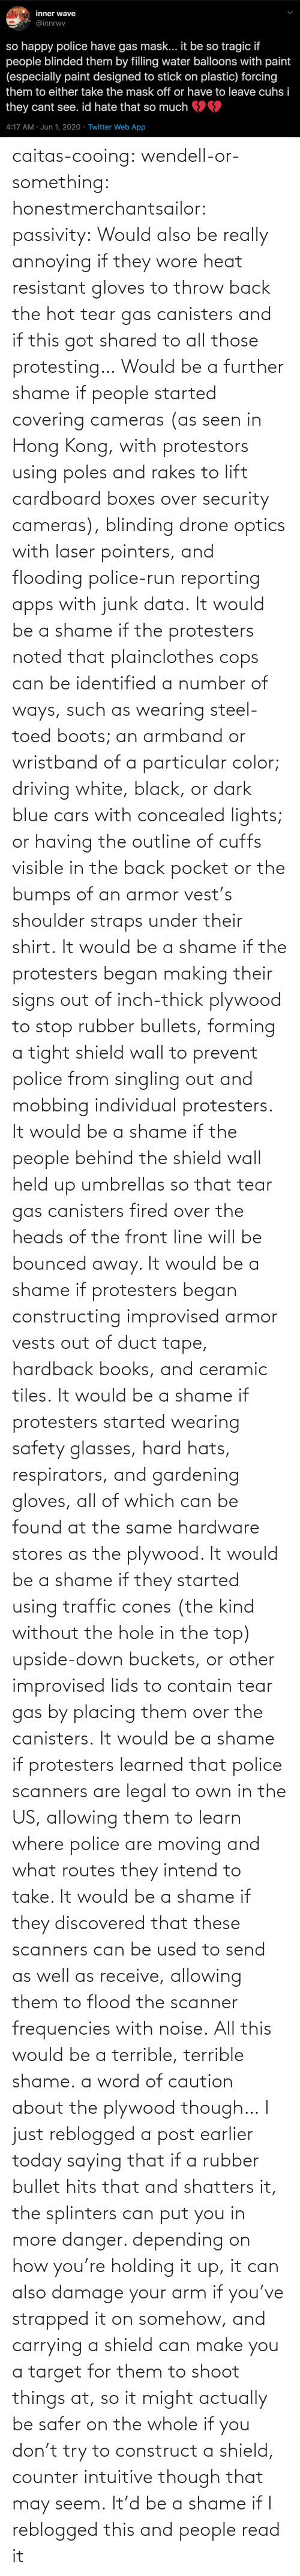 hole: caitas-cooing:  wendell-or-something: honestmerchantsailor:  passivity: Would also be really annoying if they wore heat resistant gloves to throw back the hot tear gas canisters and if this got shared to all those protesting… Would be a further shame if people started covering cameras (as seen in Hong Kong, with protestors using poles and rakes to lift cardboard boxes over security cameras), blinding drone optics with laser pointers, and flooding police-run reporting apps with junk data. It would be a shame if the protesters noted that plainclothes cops can be identified a number of ways, such as wearing steel-toed boots; an armband or wristband of a particular color; driving white, black, or dark blue cars with concealed lights; or having the outline of cuffs visible in the back pocket or the bumps of an armor vest's shoulder straps under their shirt. It would be a shame if the protesters began making their signs out of inch-thick plywood to stop rubber bullets, forming a tight shield wall to prevent police from singling out and mobbing individual protesters. It would be a shame if the people behind the shield wall held up umbrellas so that tear gas canisters fired over the heads of the front line will be bounced away. It would be a shame if protesters began constructing improvised armor vests out of duct tape, hardback books, and ceramic tiles. It would be a shame if protesters started wearing safety glasses, hard hats, respirators, and gardening gloves, all of which can be found at the same hardware stores as the plywood. It would be a shame if they started using traffic cones (the kind without the hole in the top) upside-down buckets, or other improvised lids to contain tear gas by placing them over the canisters. It would be a shame if protesters learned that police scanners are legal to own in the US, allowing them to learn where police are moving and what routes they intend to take. It would be a shame if they discovered that these scanners can be used to send as well as receive, allowing them to flood the scanner frequencies with noise. All this would be a terrible, terrible shame.    a word of caution about the plywood though… I just reblogged a post earlier today saying that if a rubber bullet hits that and shatters it, the splinters can put you in more danger. depending on how you're holding it up, it can also damage your arm if you've strapped it on somehow, and carrying a shield can make you a target for them to shoot things at, so it might actually be safer on the whole if you don't try to construct a shield, counter intuitive though that may seem.    It'd be a shame if I reblogged this and people read it